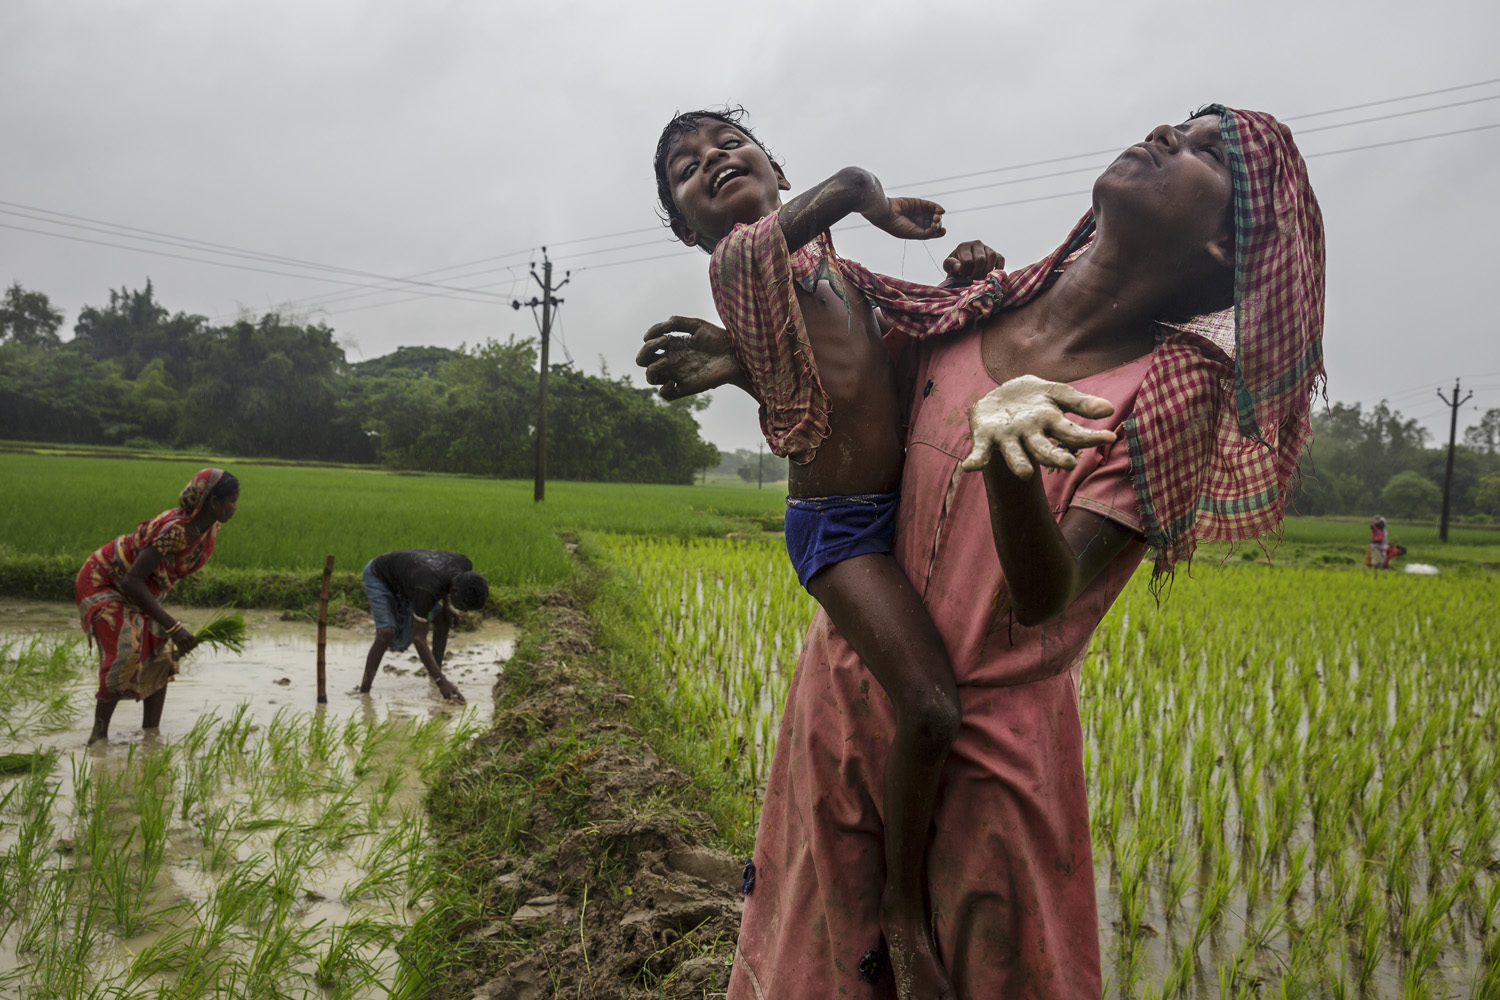 Sonia and Anita Singh accompany their parents during a rainstorm while they work in fields, Oct. 21, 2013 in West Bengal, India.